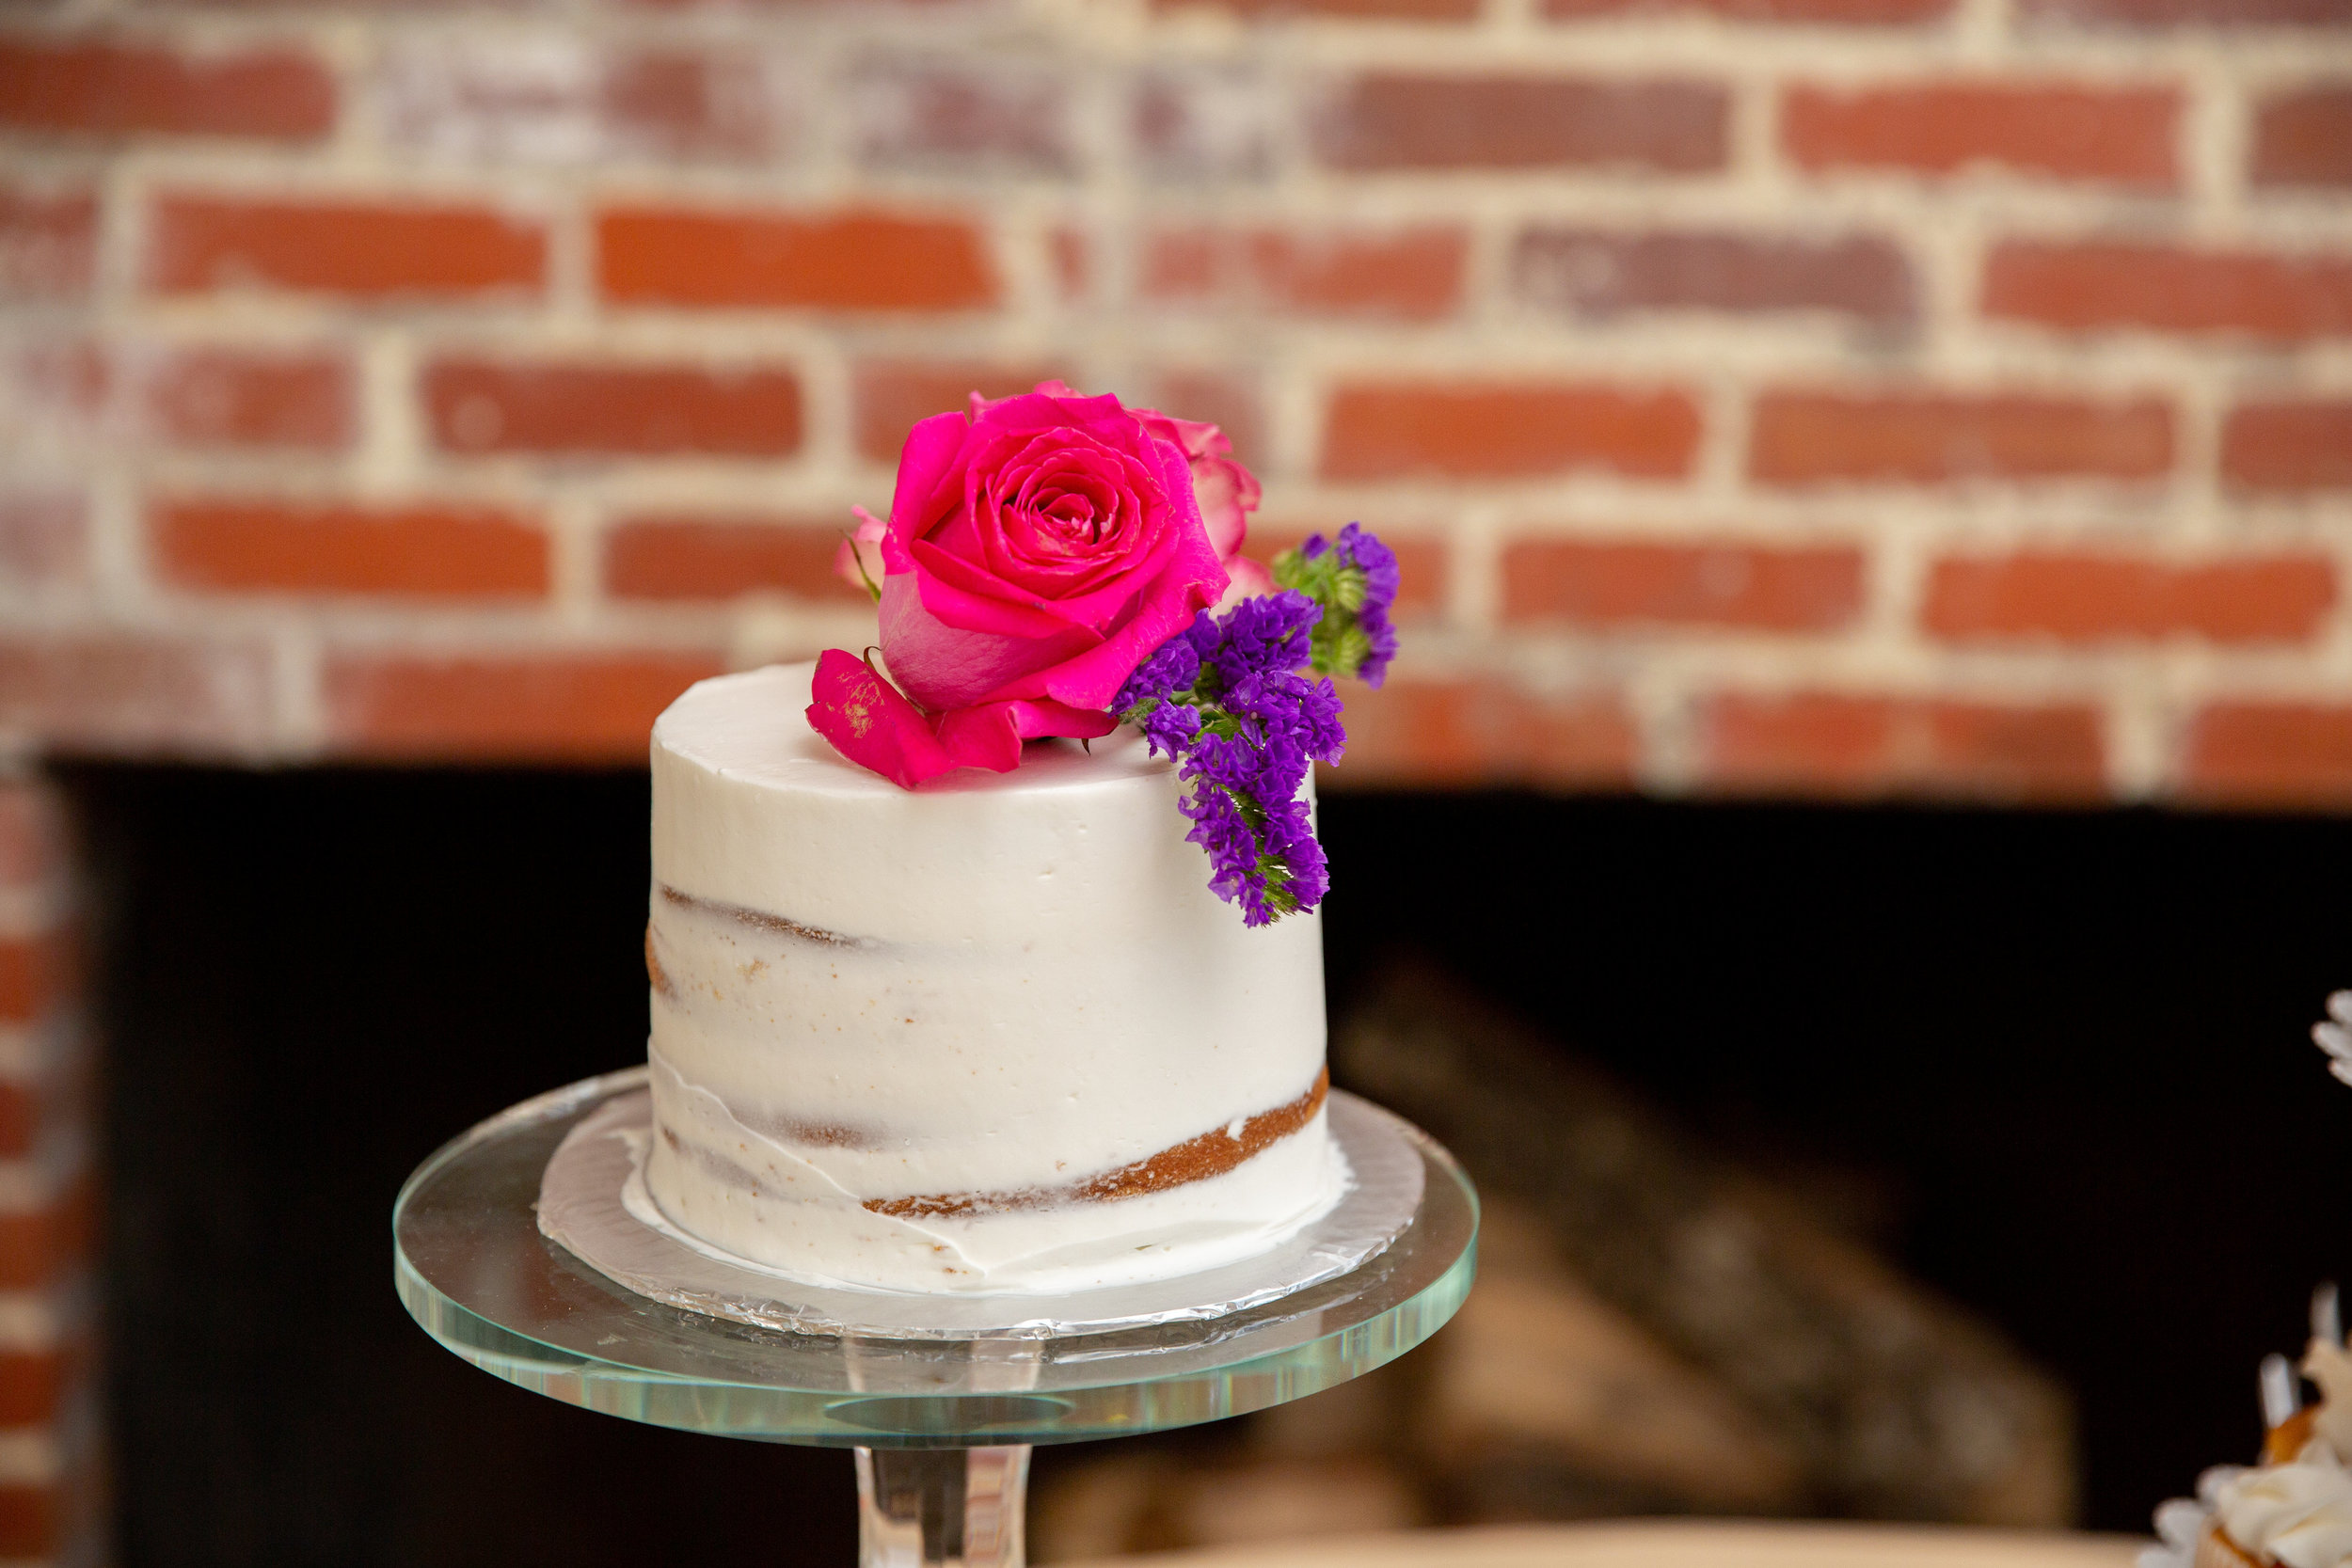 Small One Tiered Wedding Cake.jpg